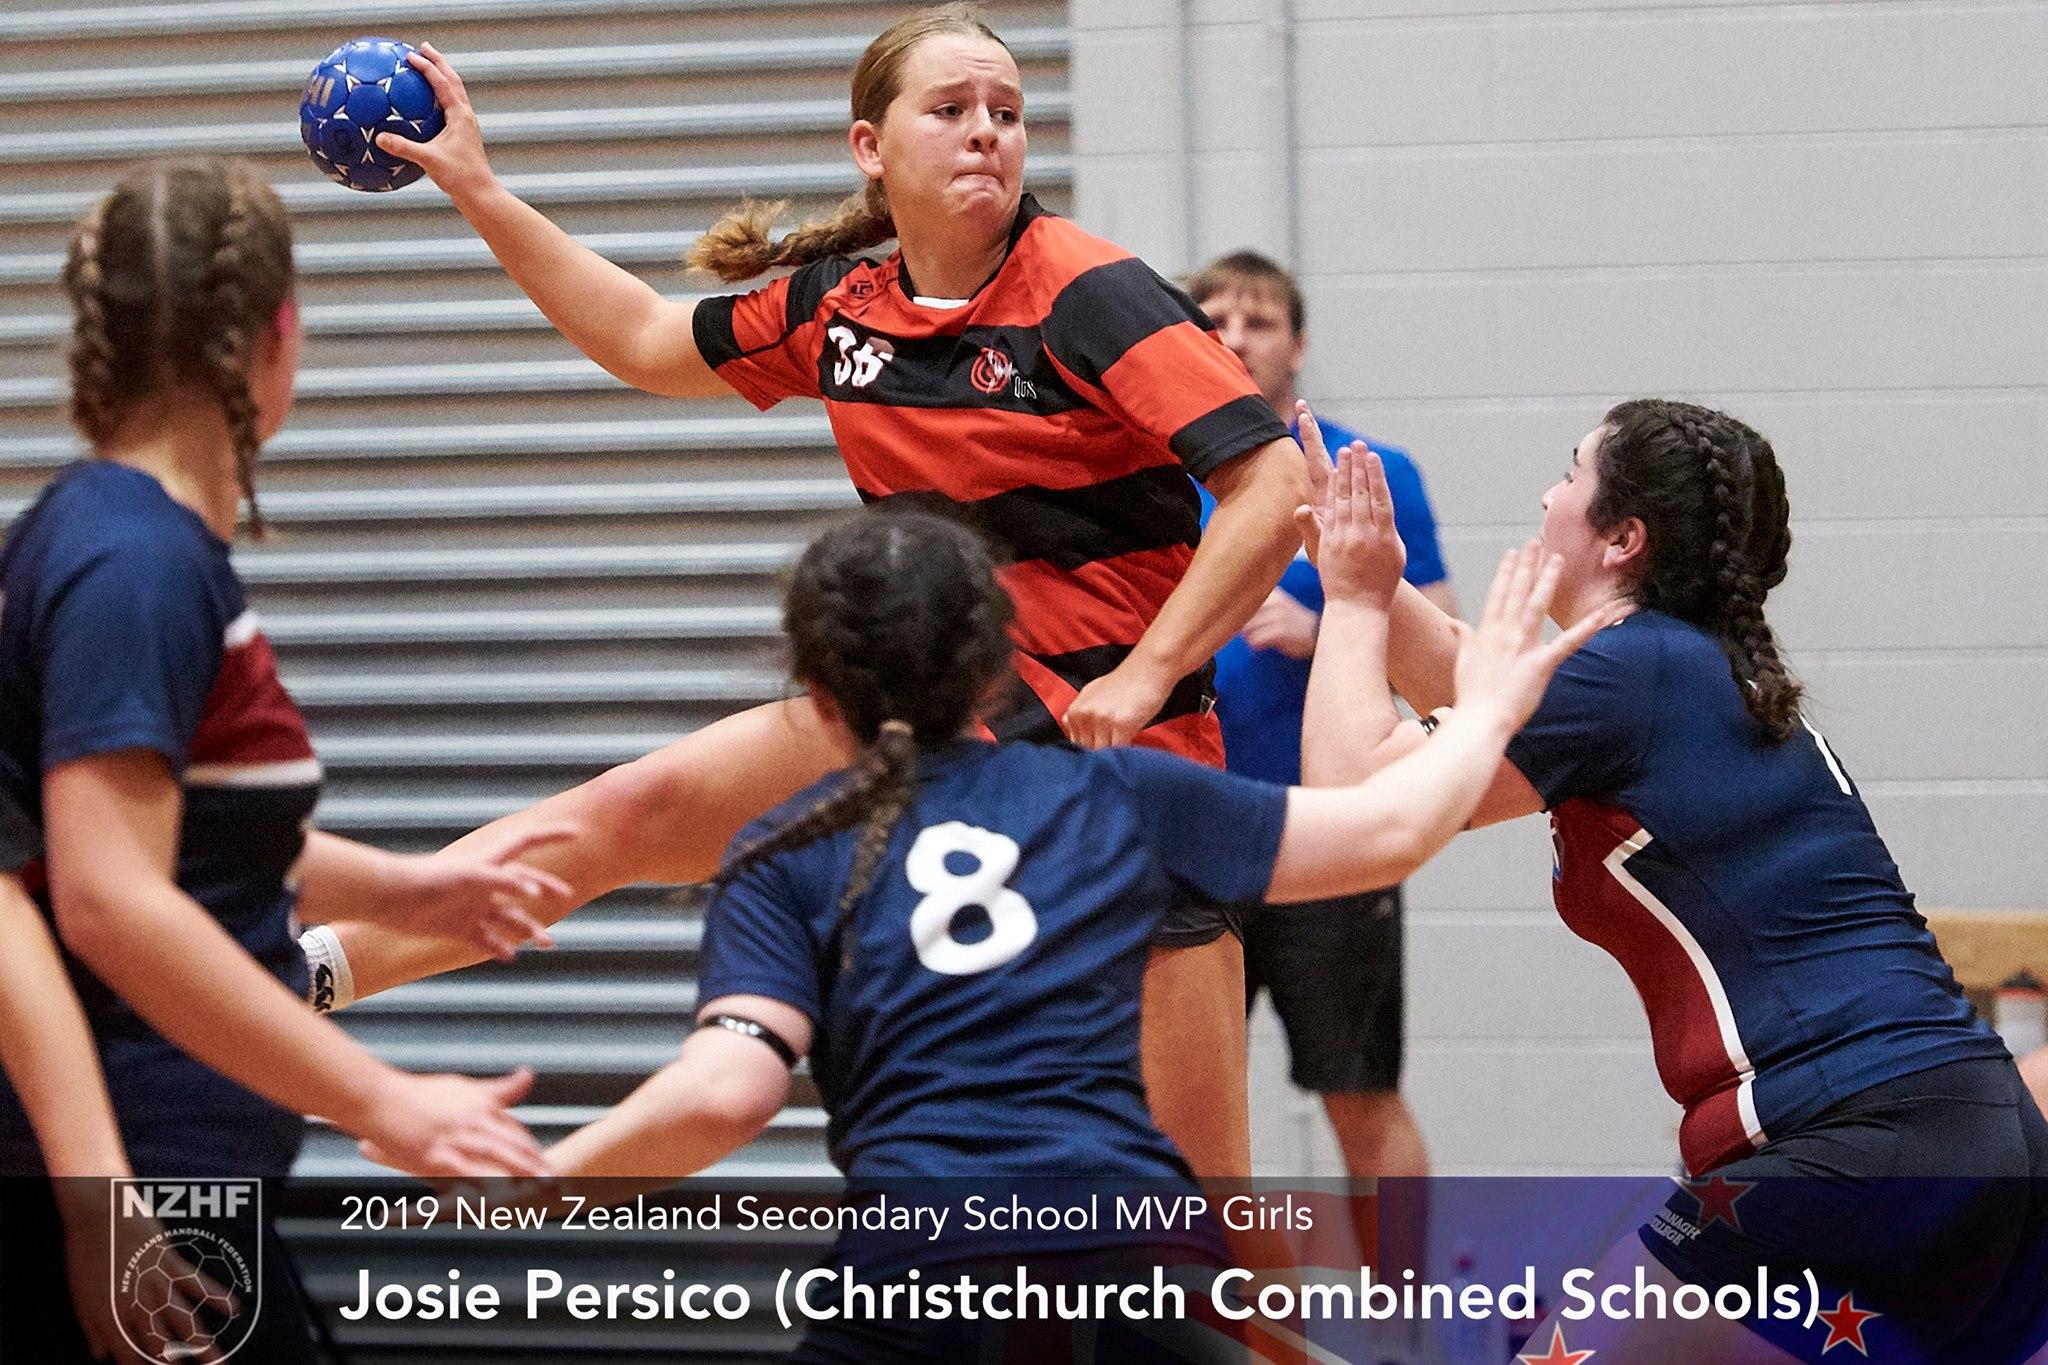 2019 Girls Top Goal Scorer Josie Persico Christchurch Combined Schools.jpg